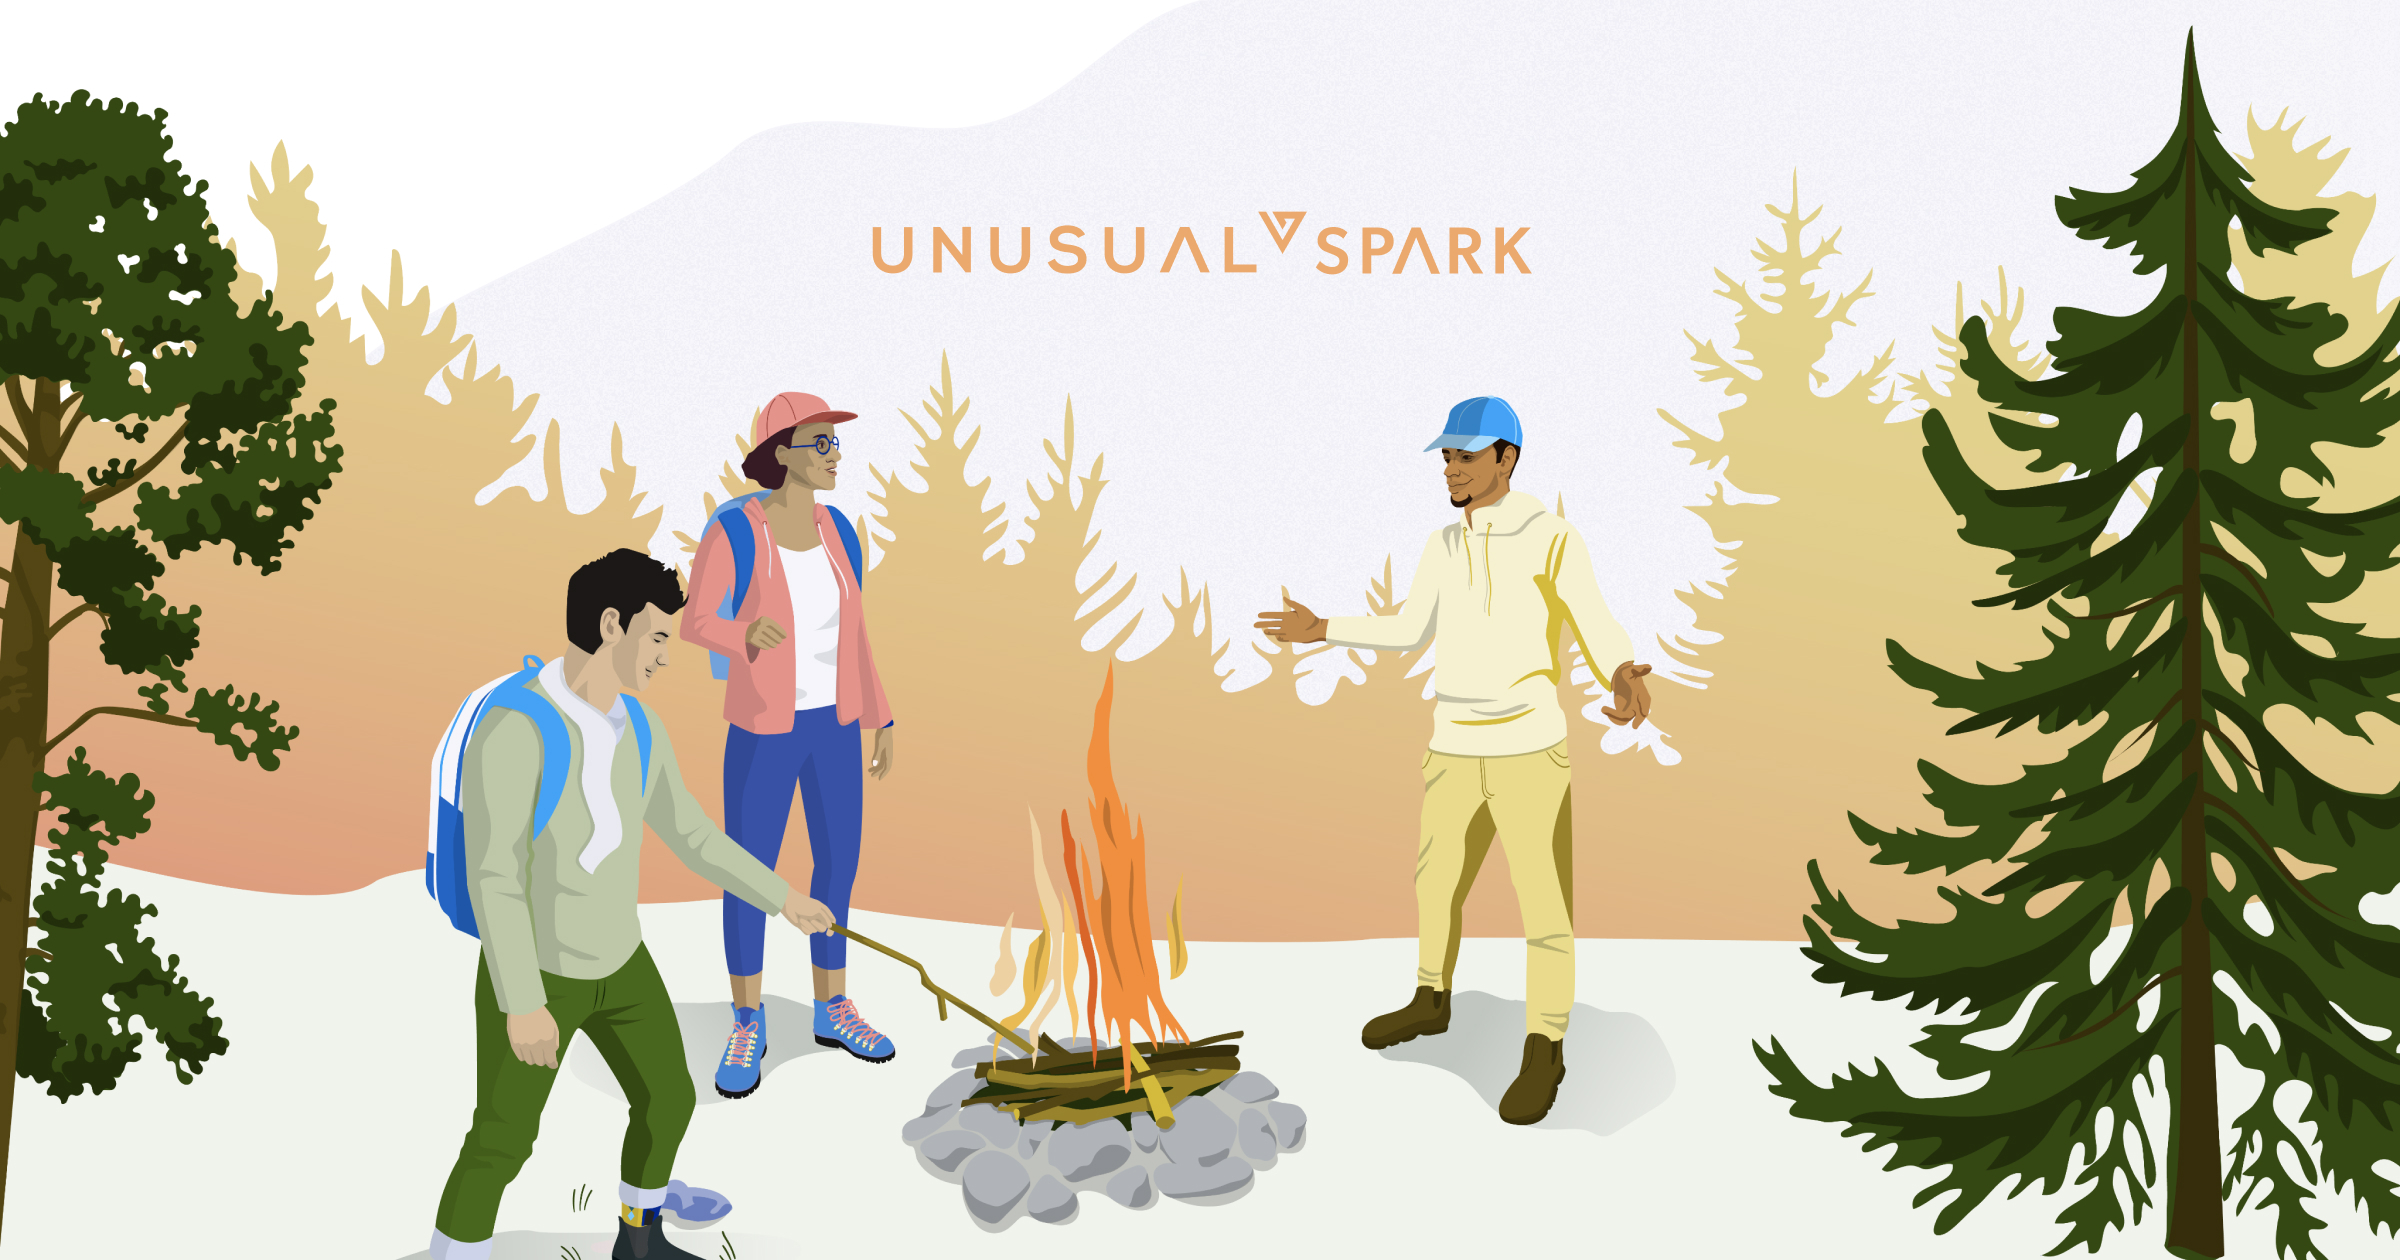 Introducing Unusual Spark — Our Pre-Seed Program to Support Founders from Day Zero